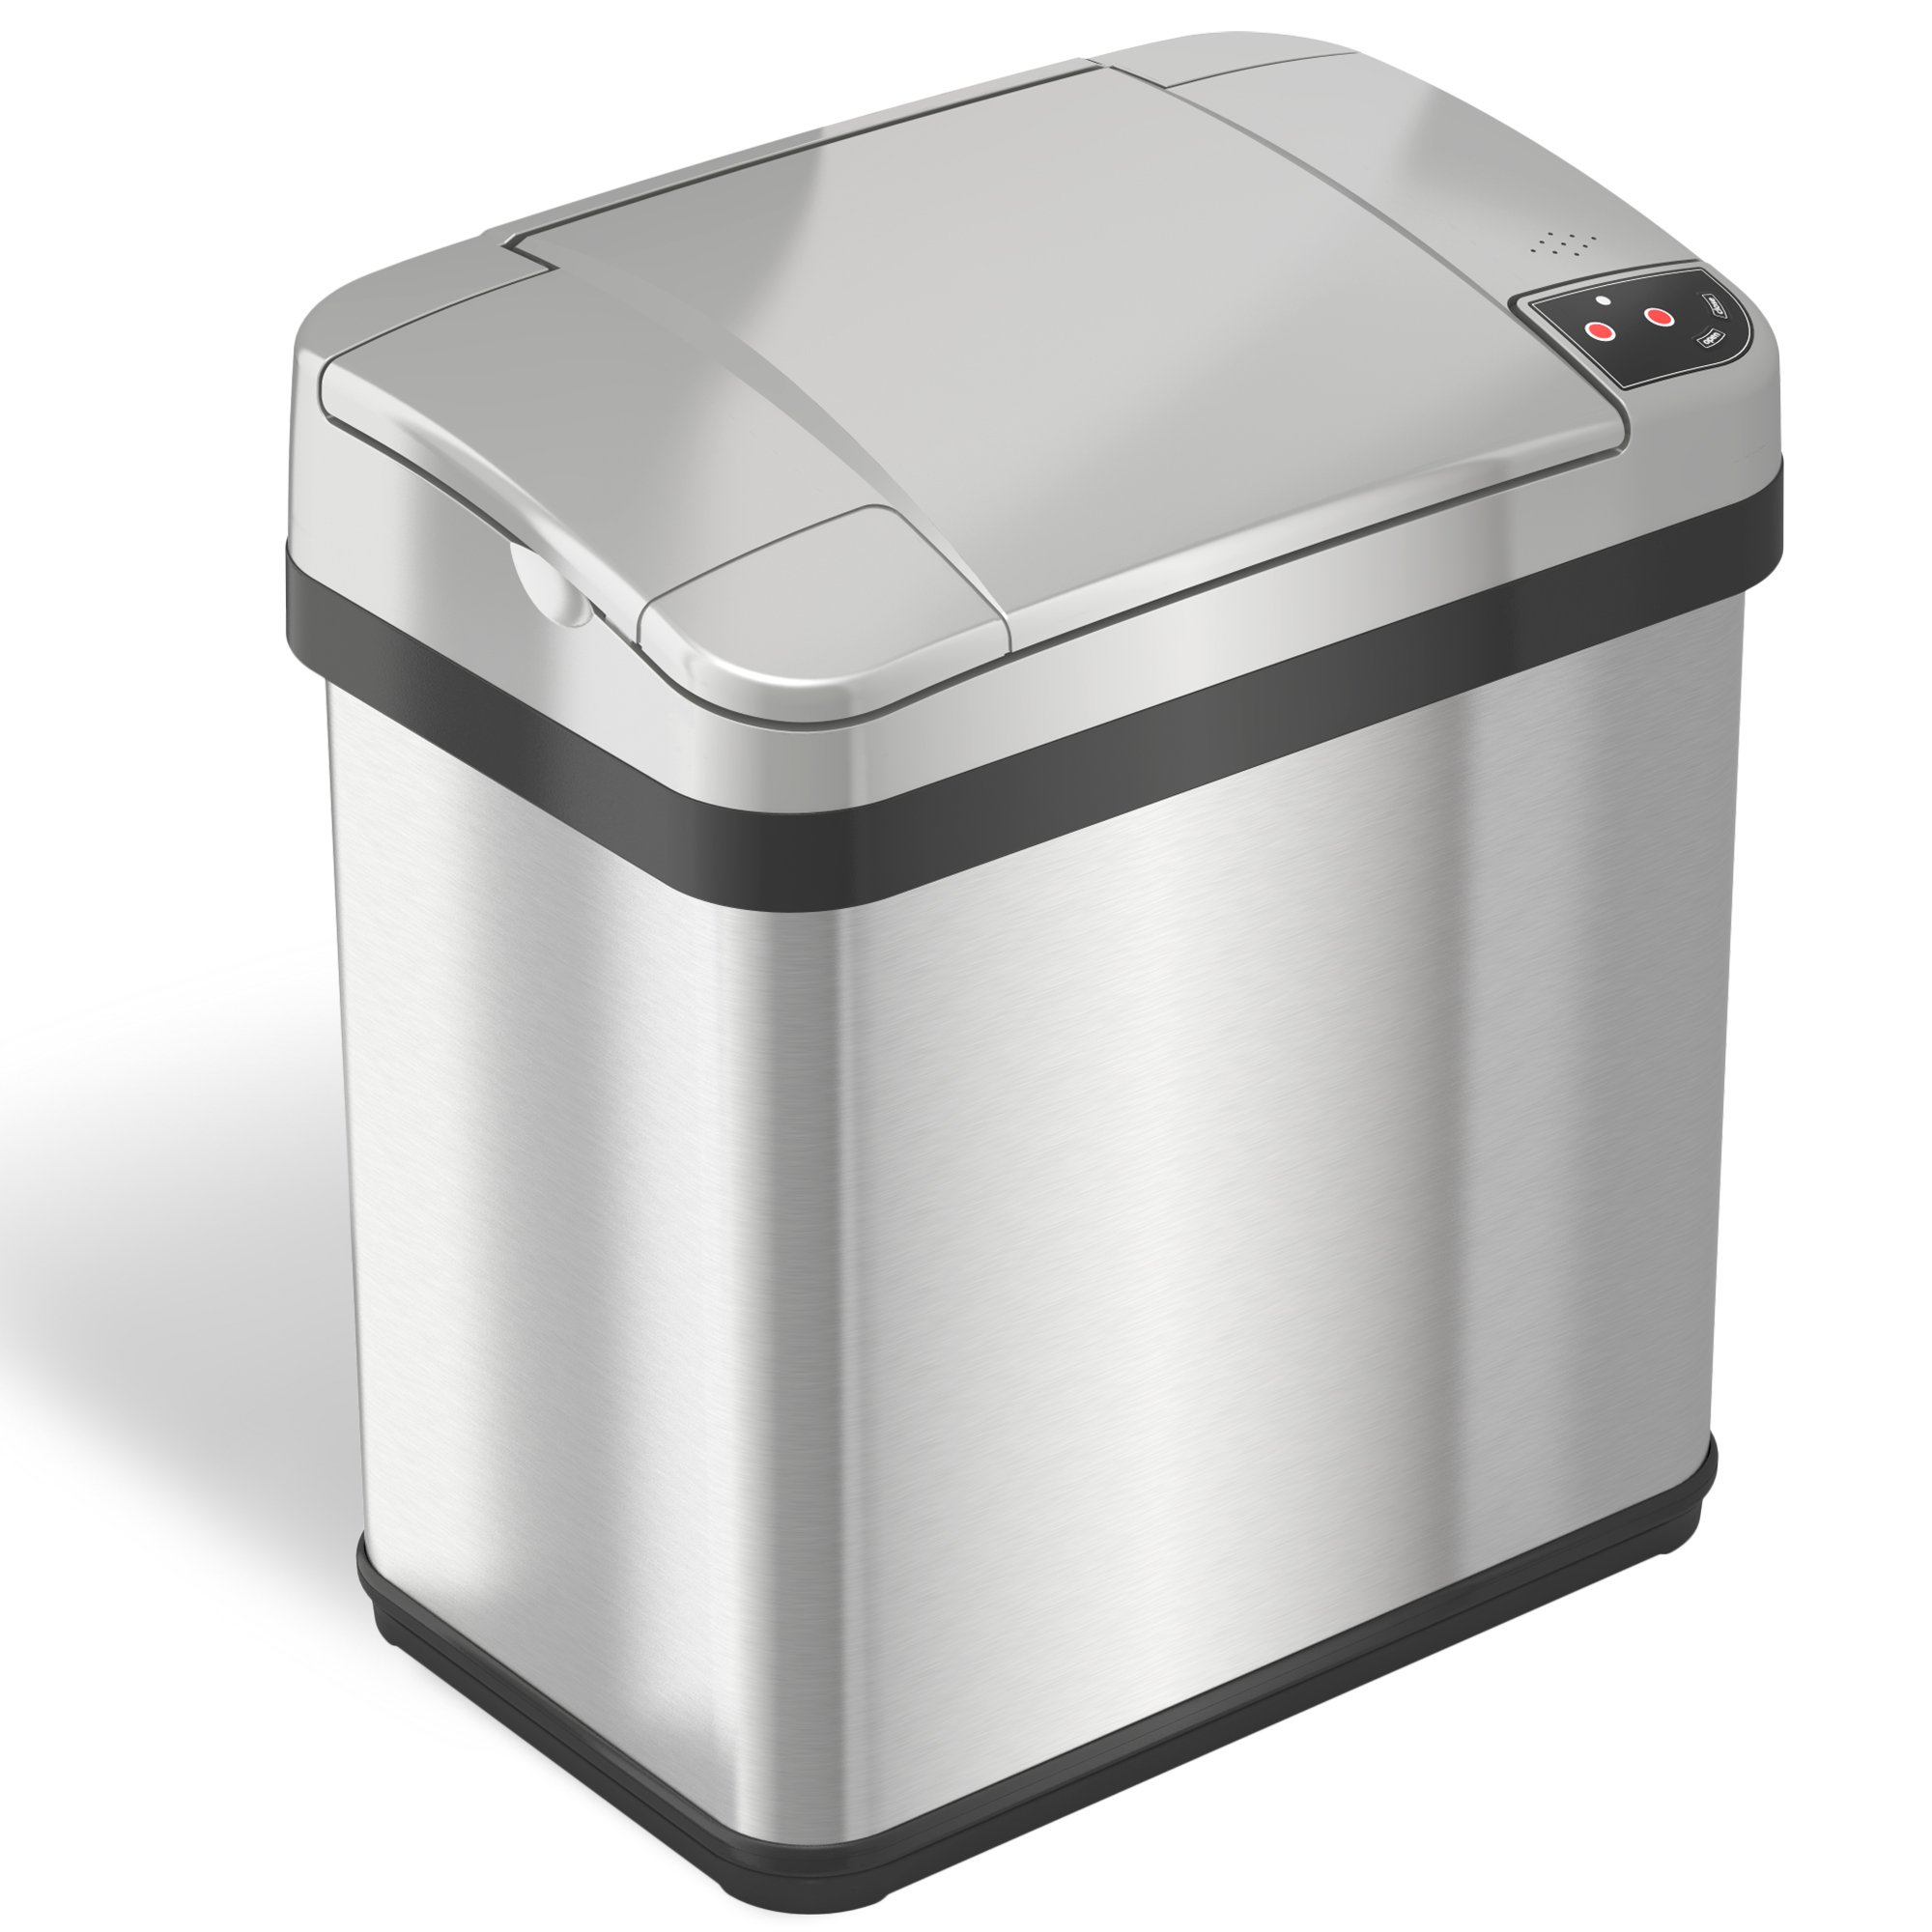 iTouchless 2.5 Gallon Stainless Steel Touchless Trash Can with Odor Filter and Fragrance, Automatic Sensor Lid, Bathroom or Office, 9.5 L by iTouchless